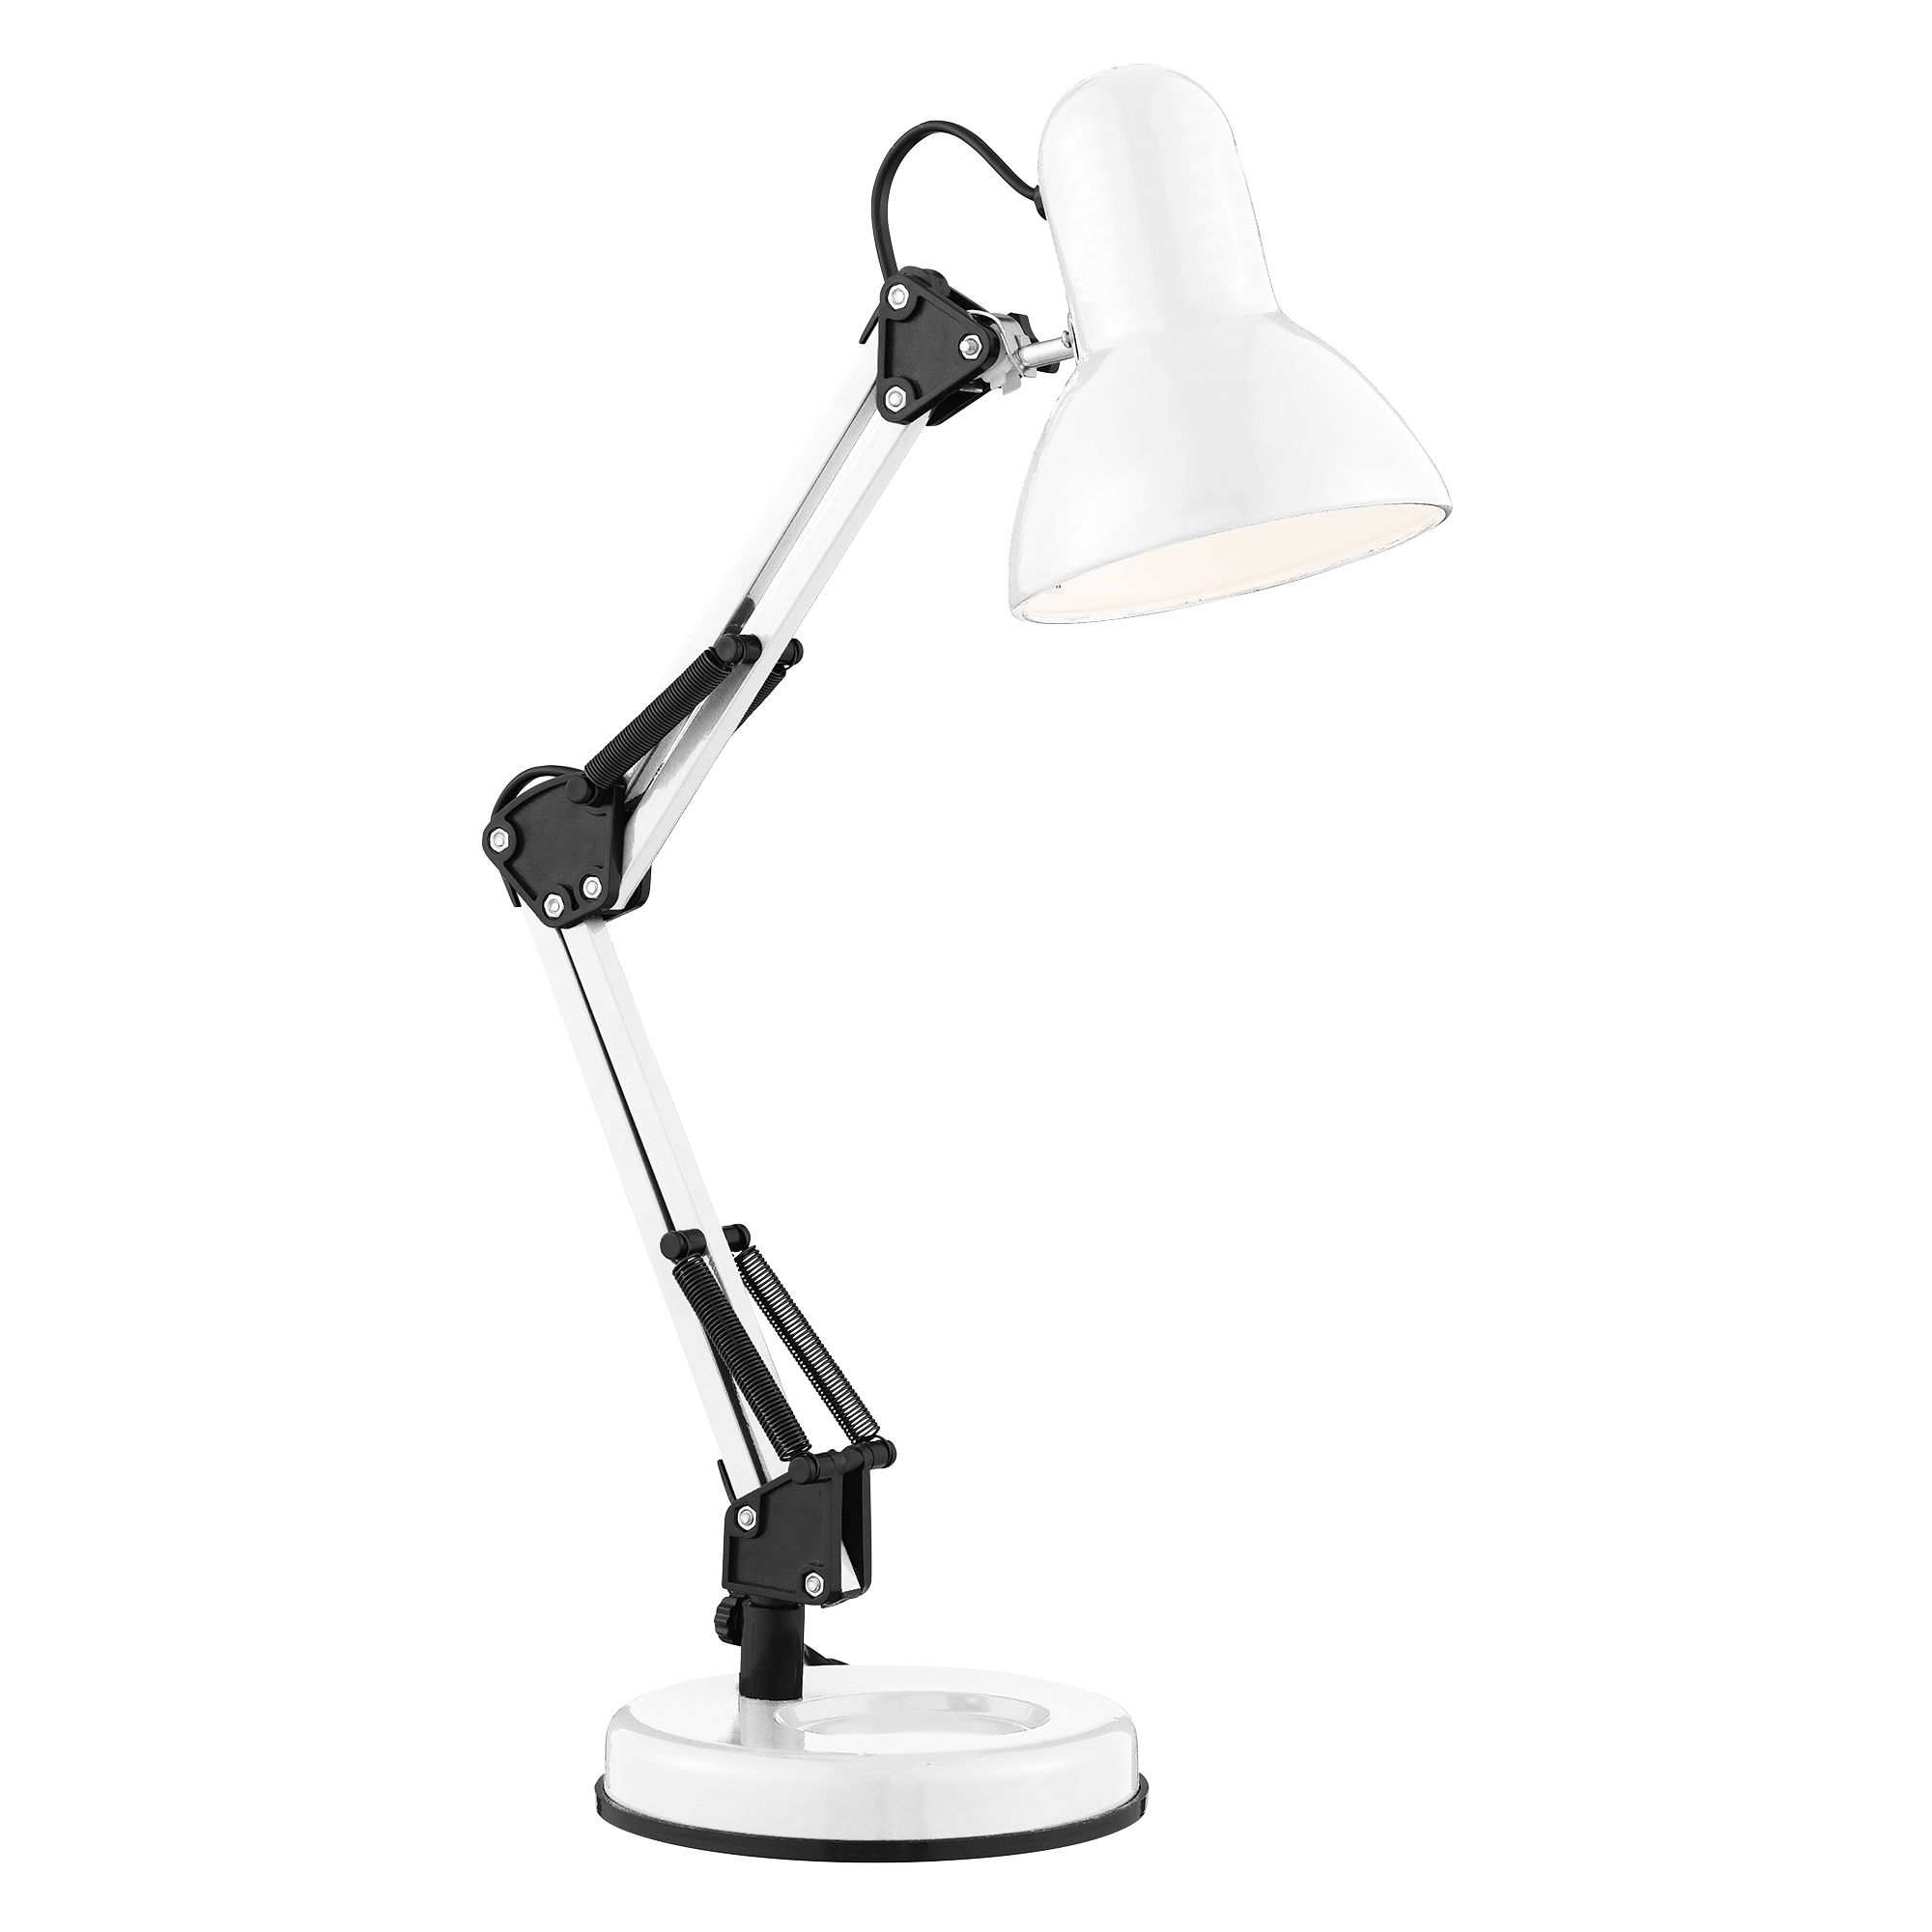 Shiny White Hobby Table Lamp Adjustable